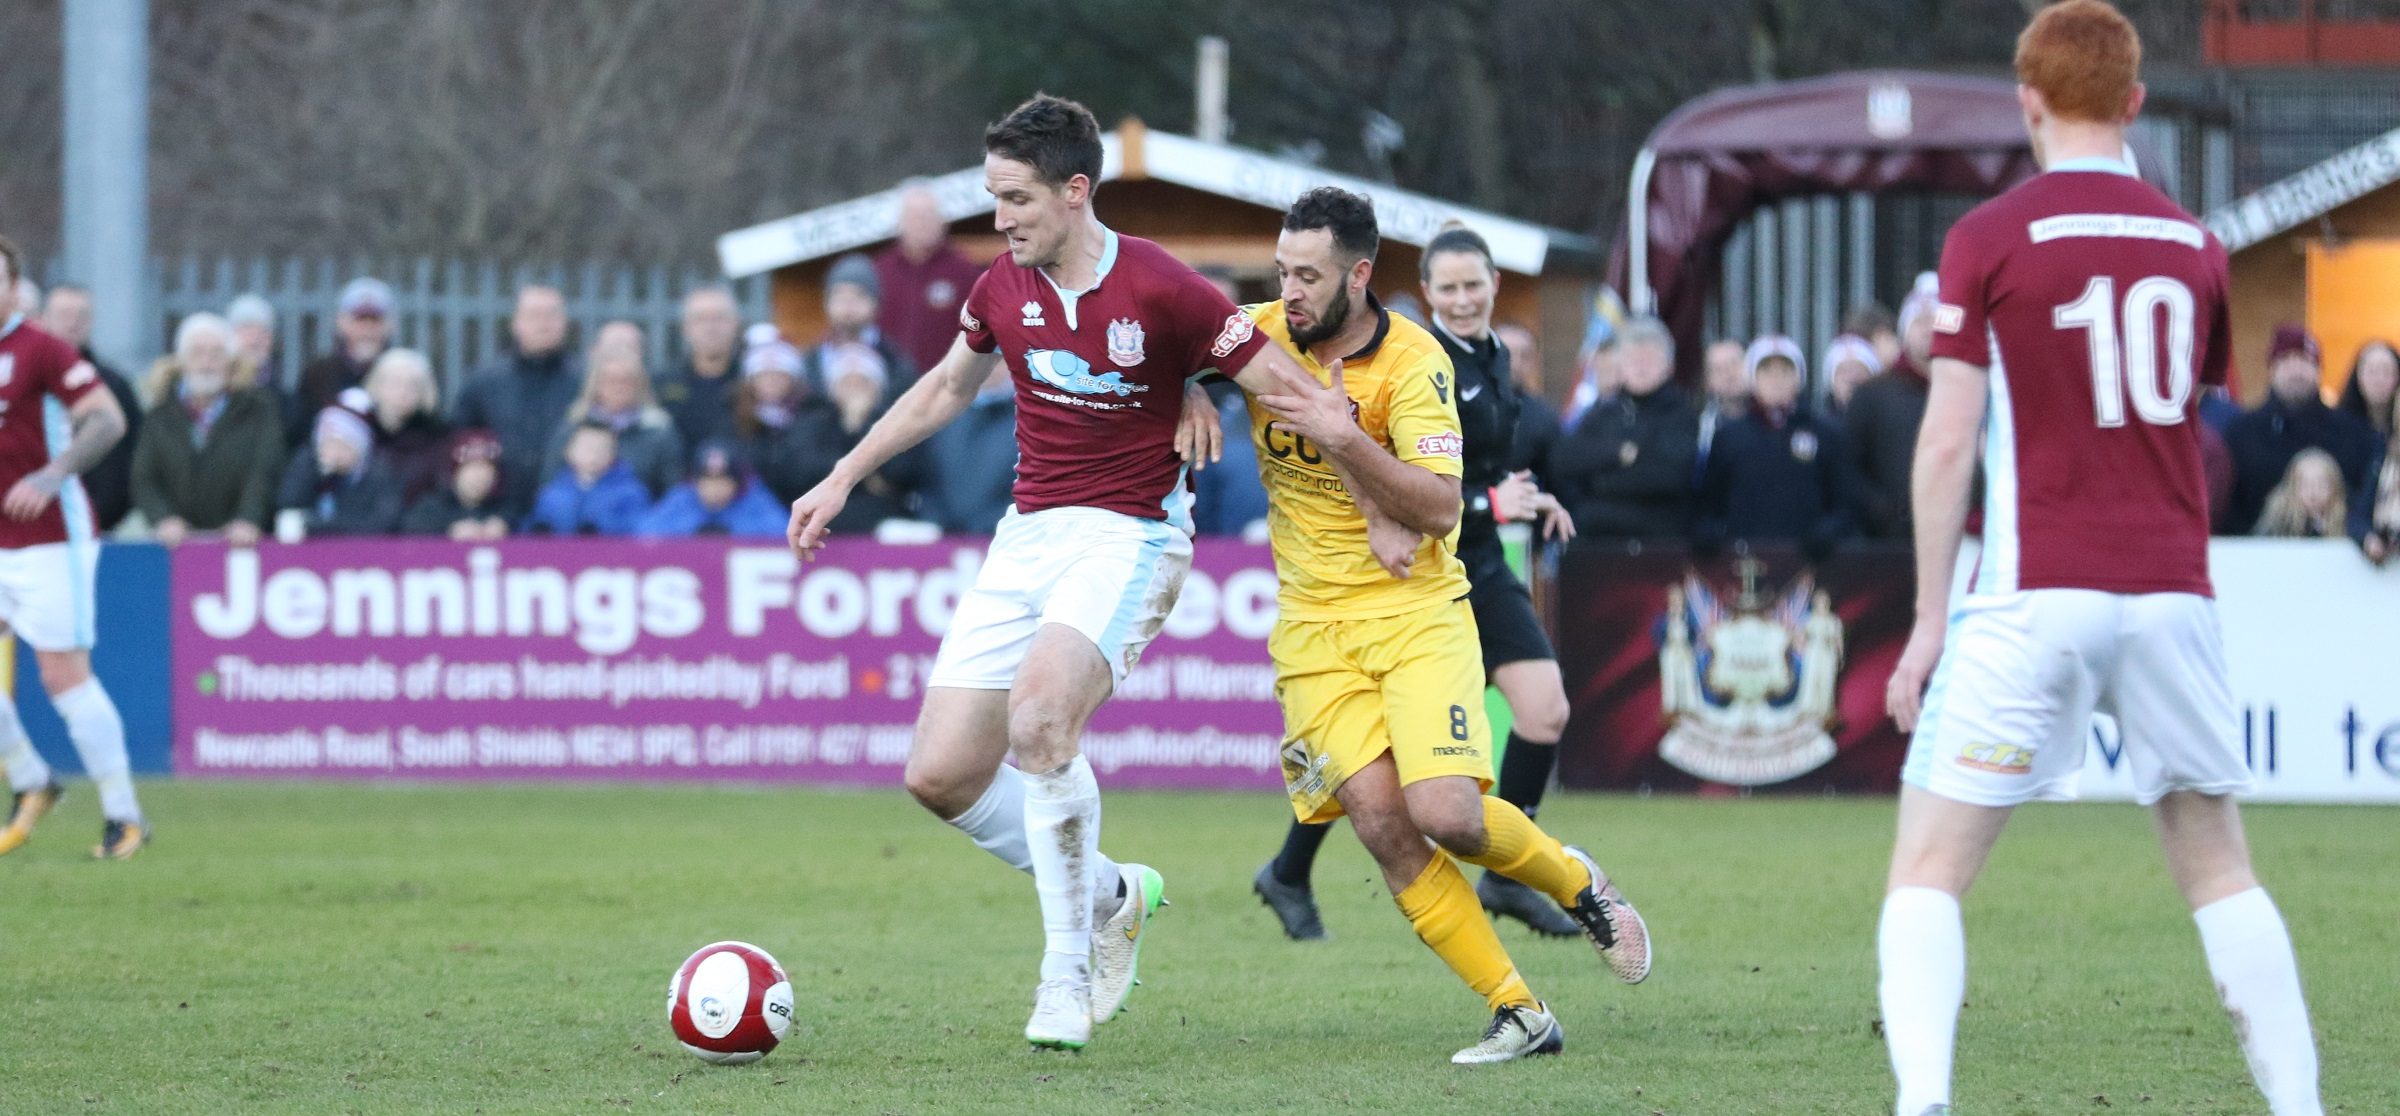 Match Preview: South Shields vs Radcliffe FC, Evo-Stik North